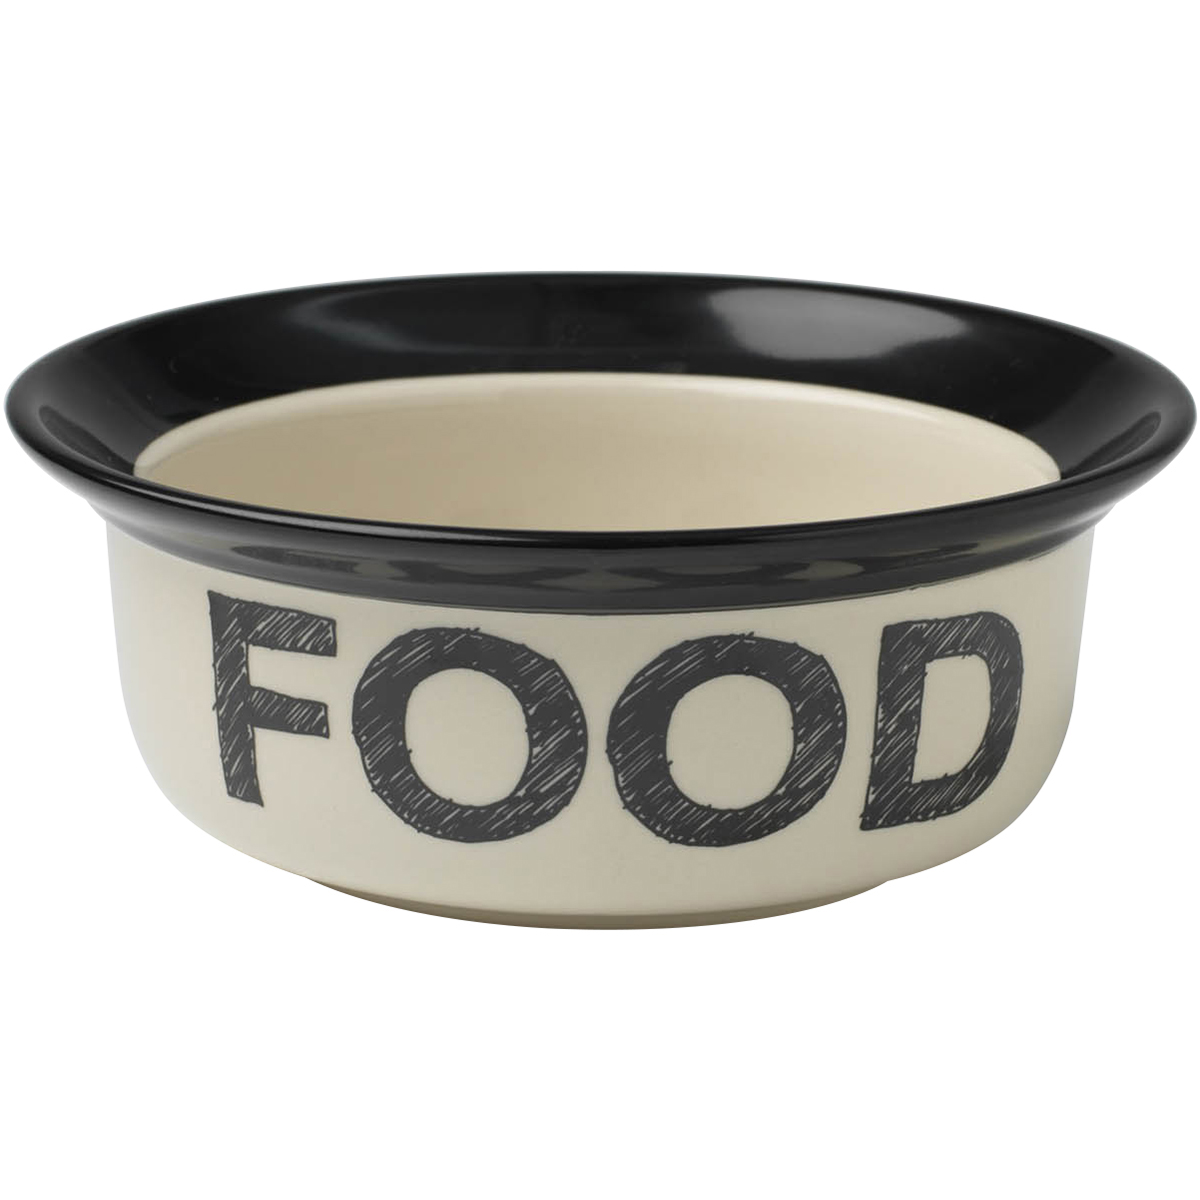 Petrageous Designs Bowl - Holds 2 Cups-Food